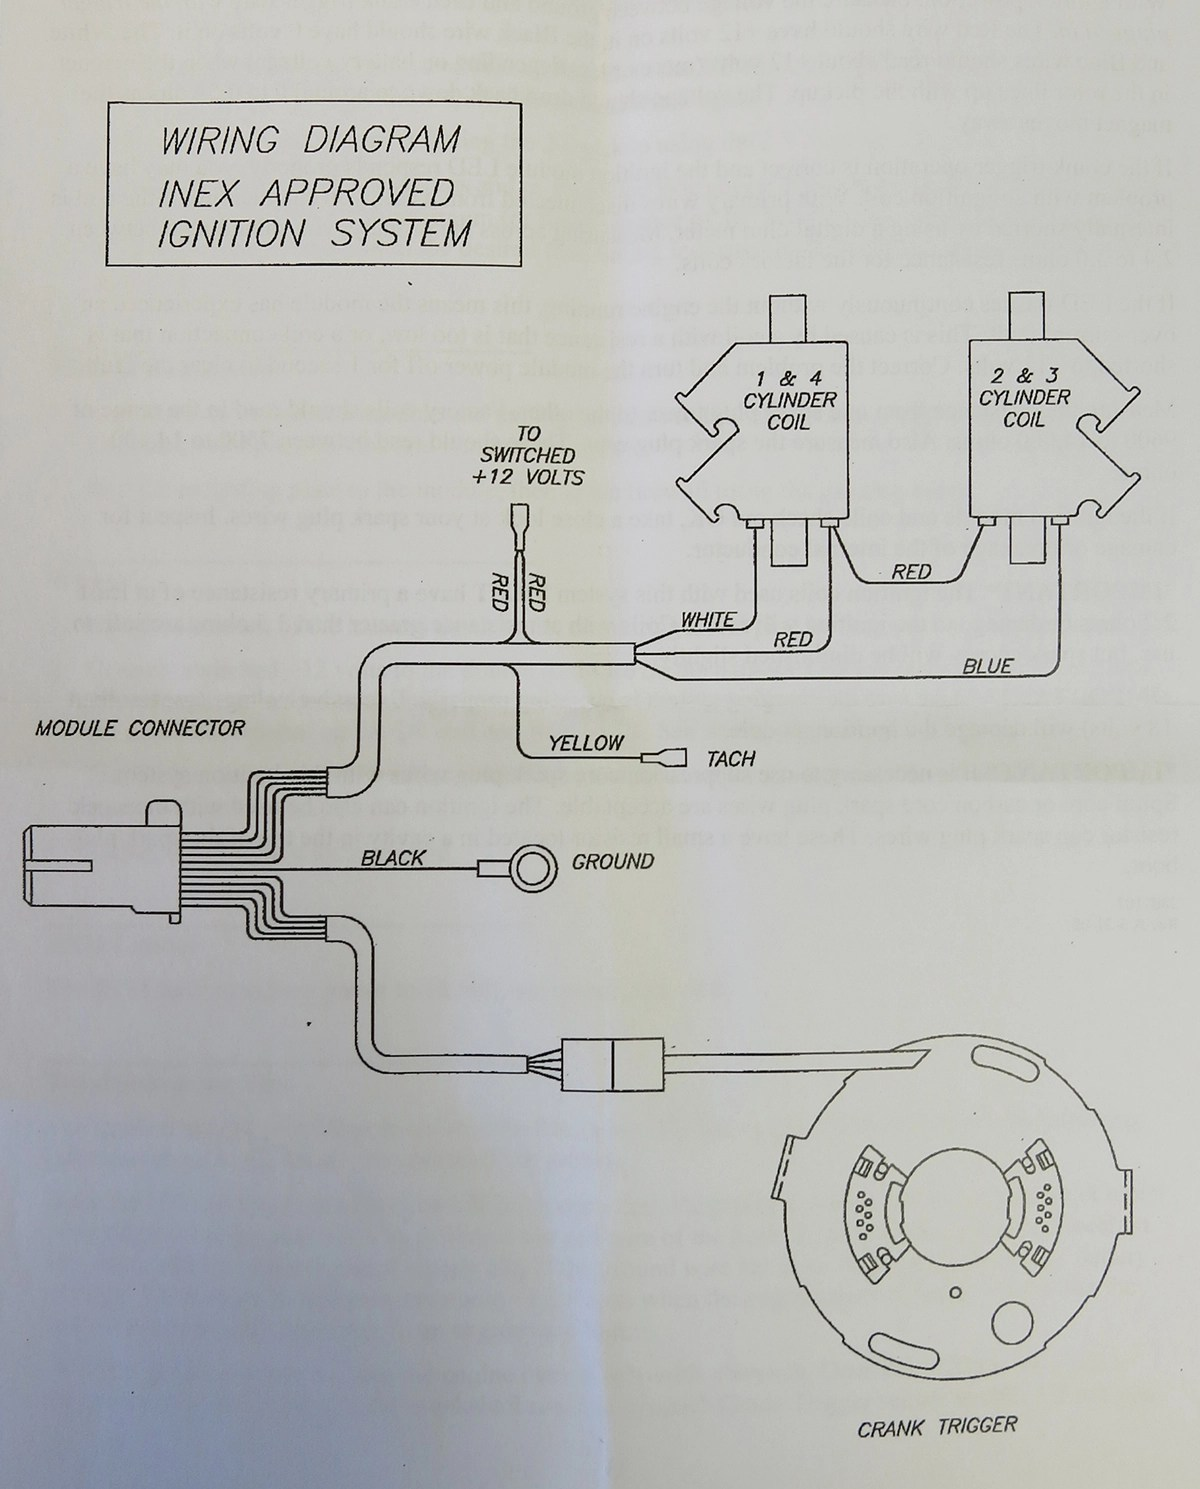 wiring diagram for legend race car free download wiring diagram rh xwiaw us Legend Race Car Parts Race Car Electrical Wiring